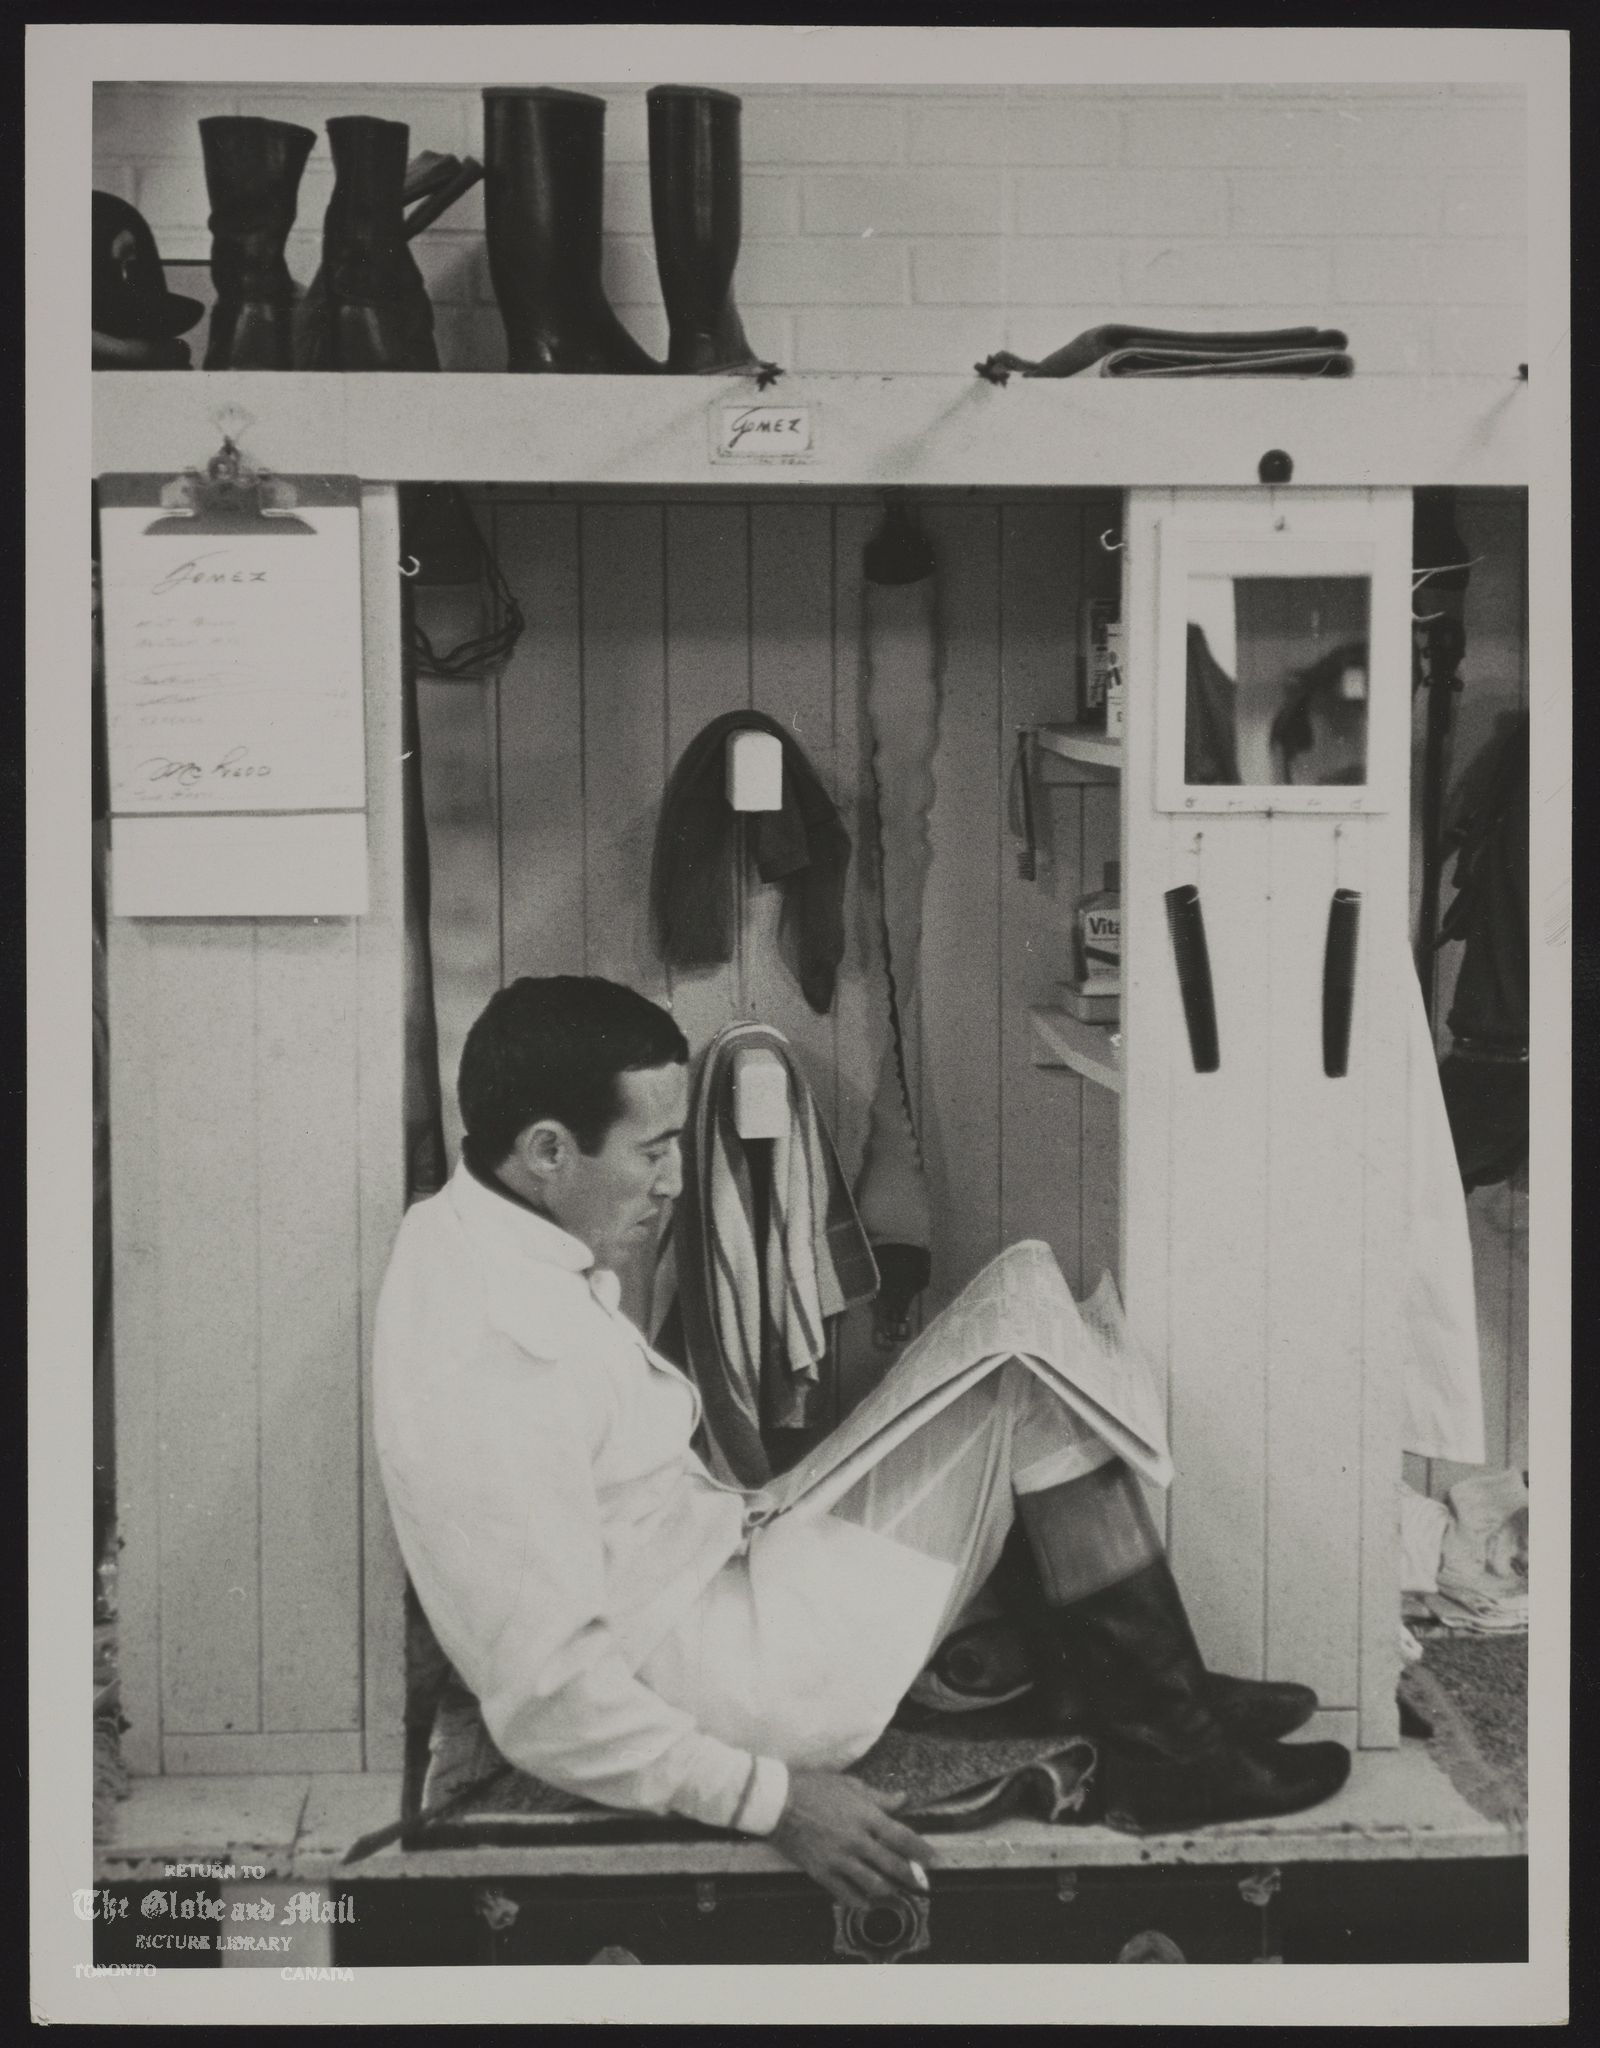 Avelino GOMEZ Jockey A smoke and a glance at a newspaper while awaiting call. Photo used oct. 8/66